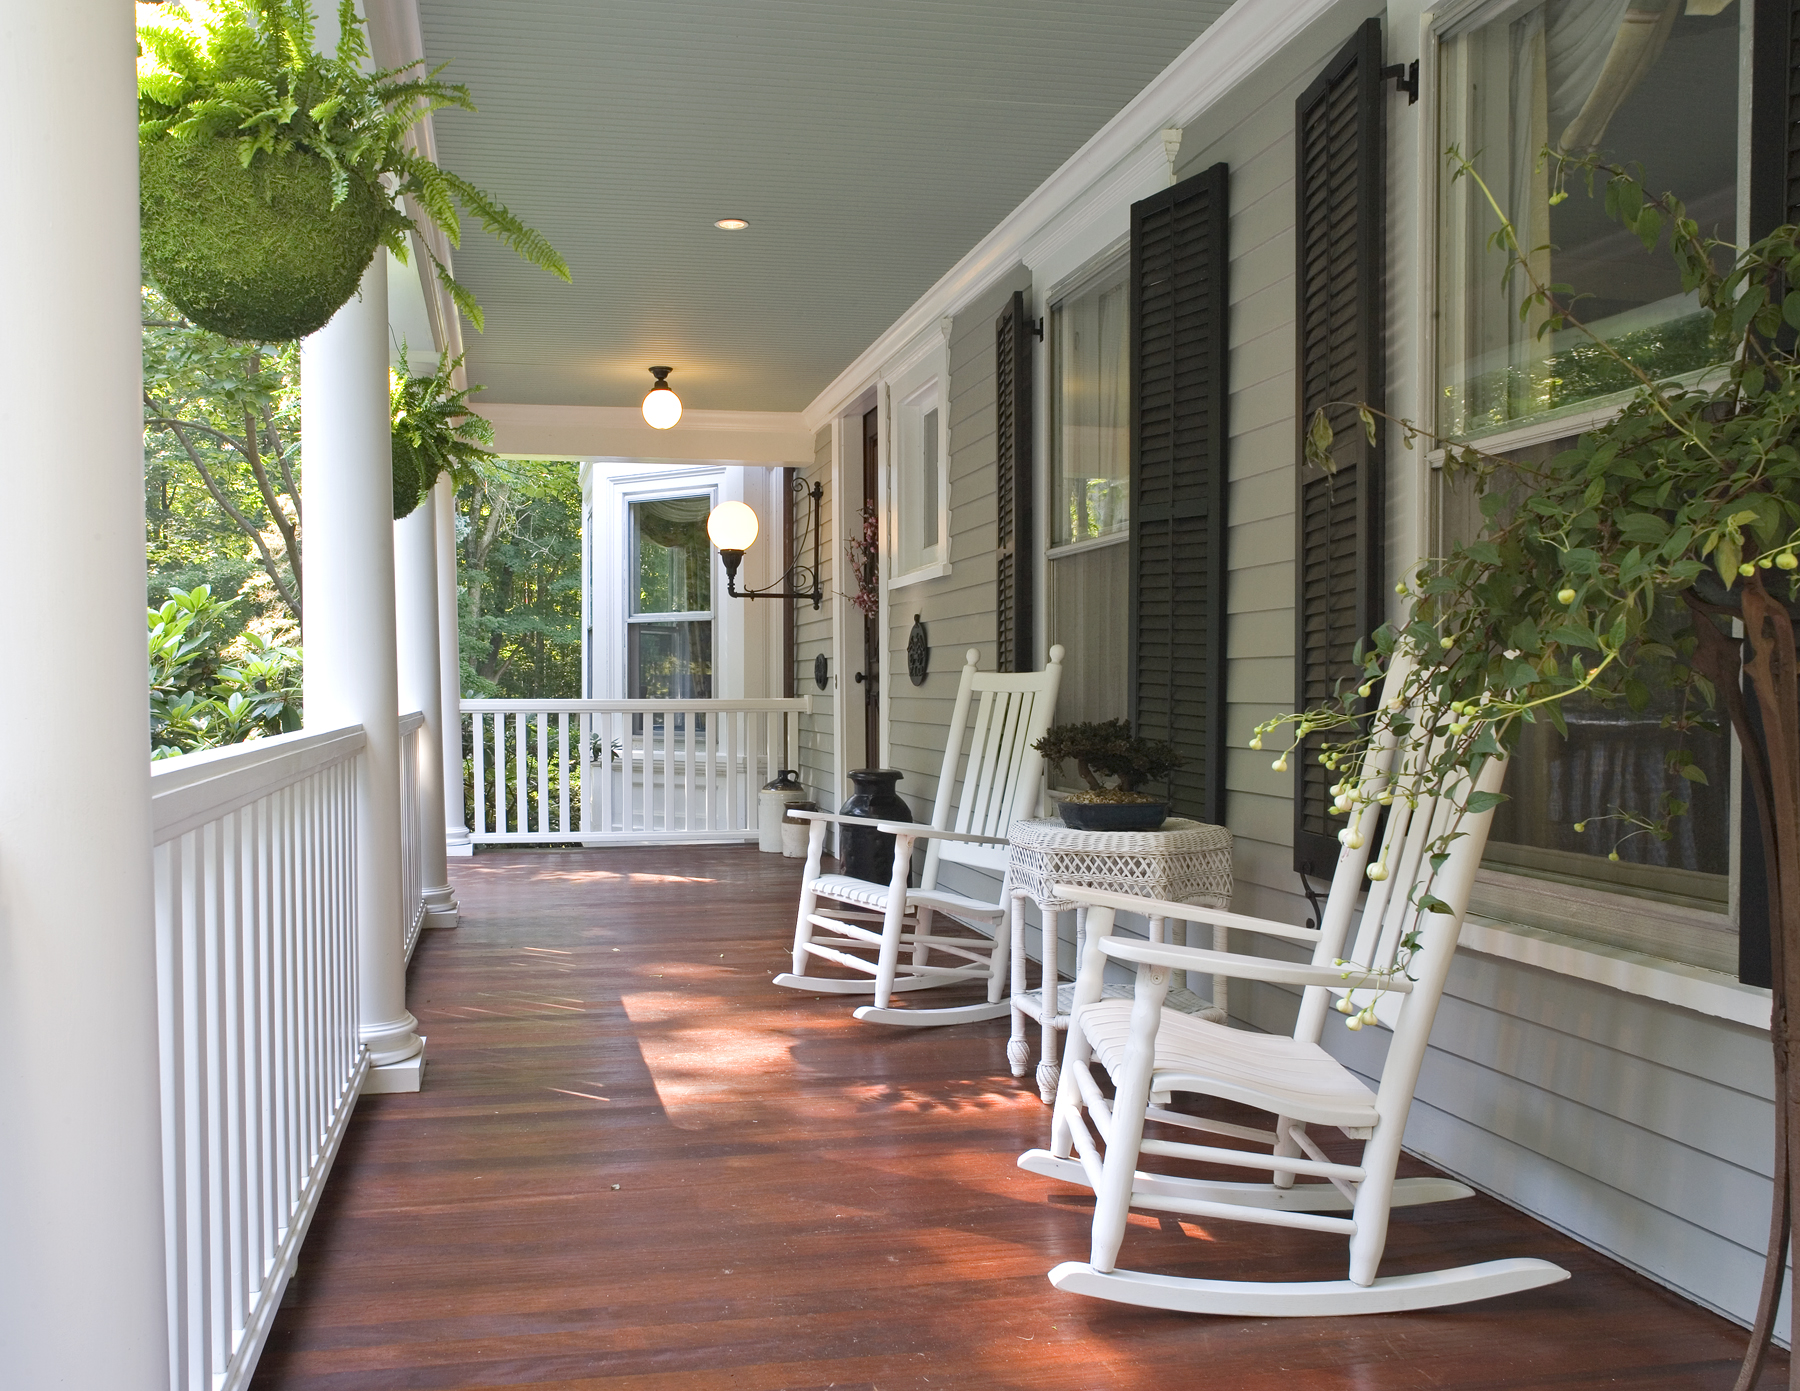 Luxury front porch design ideas 9